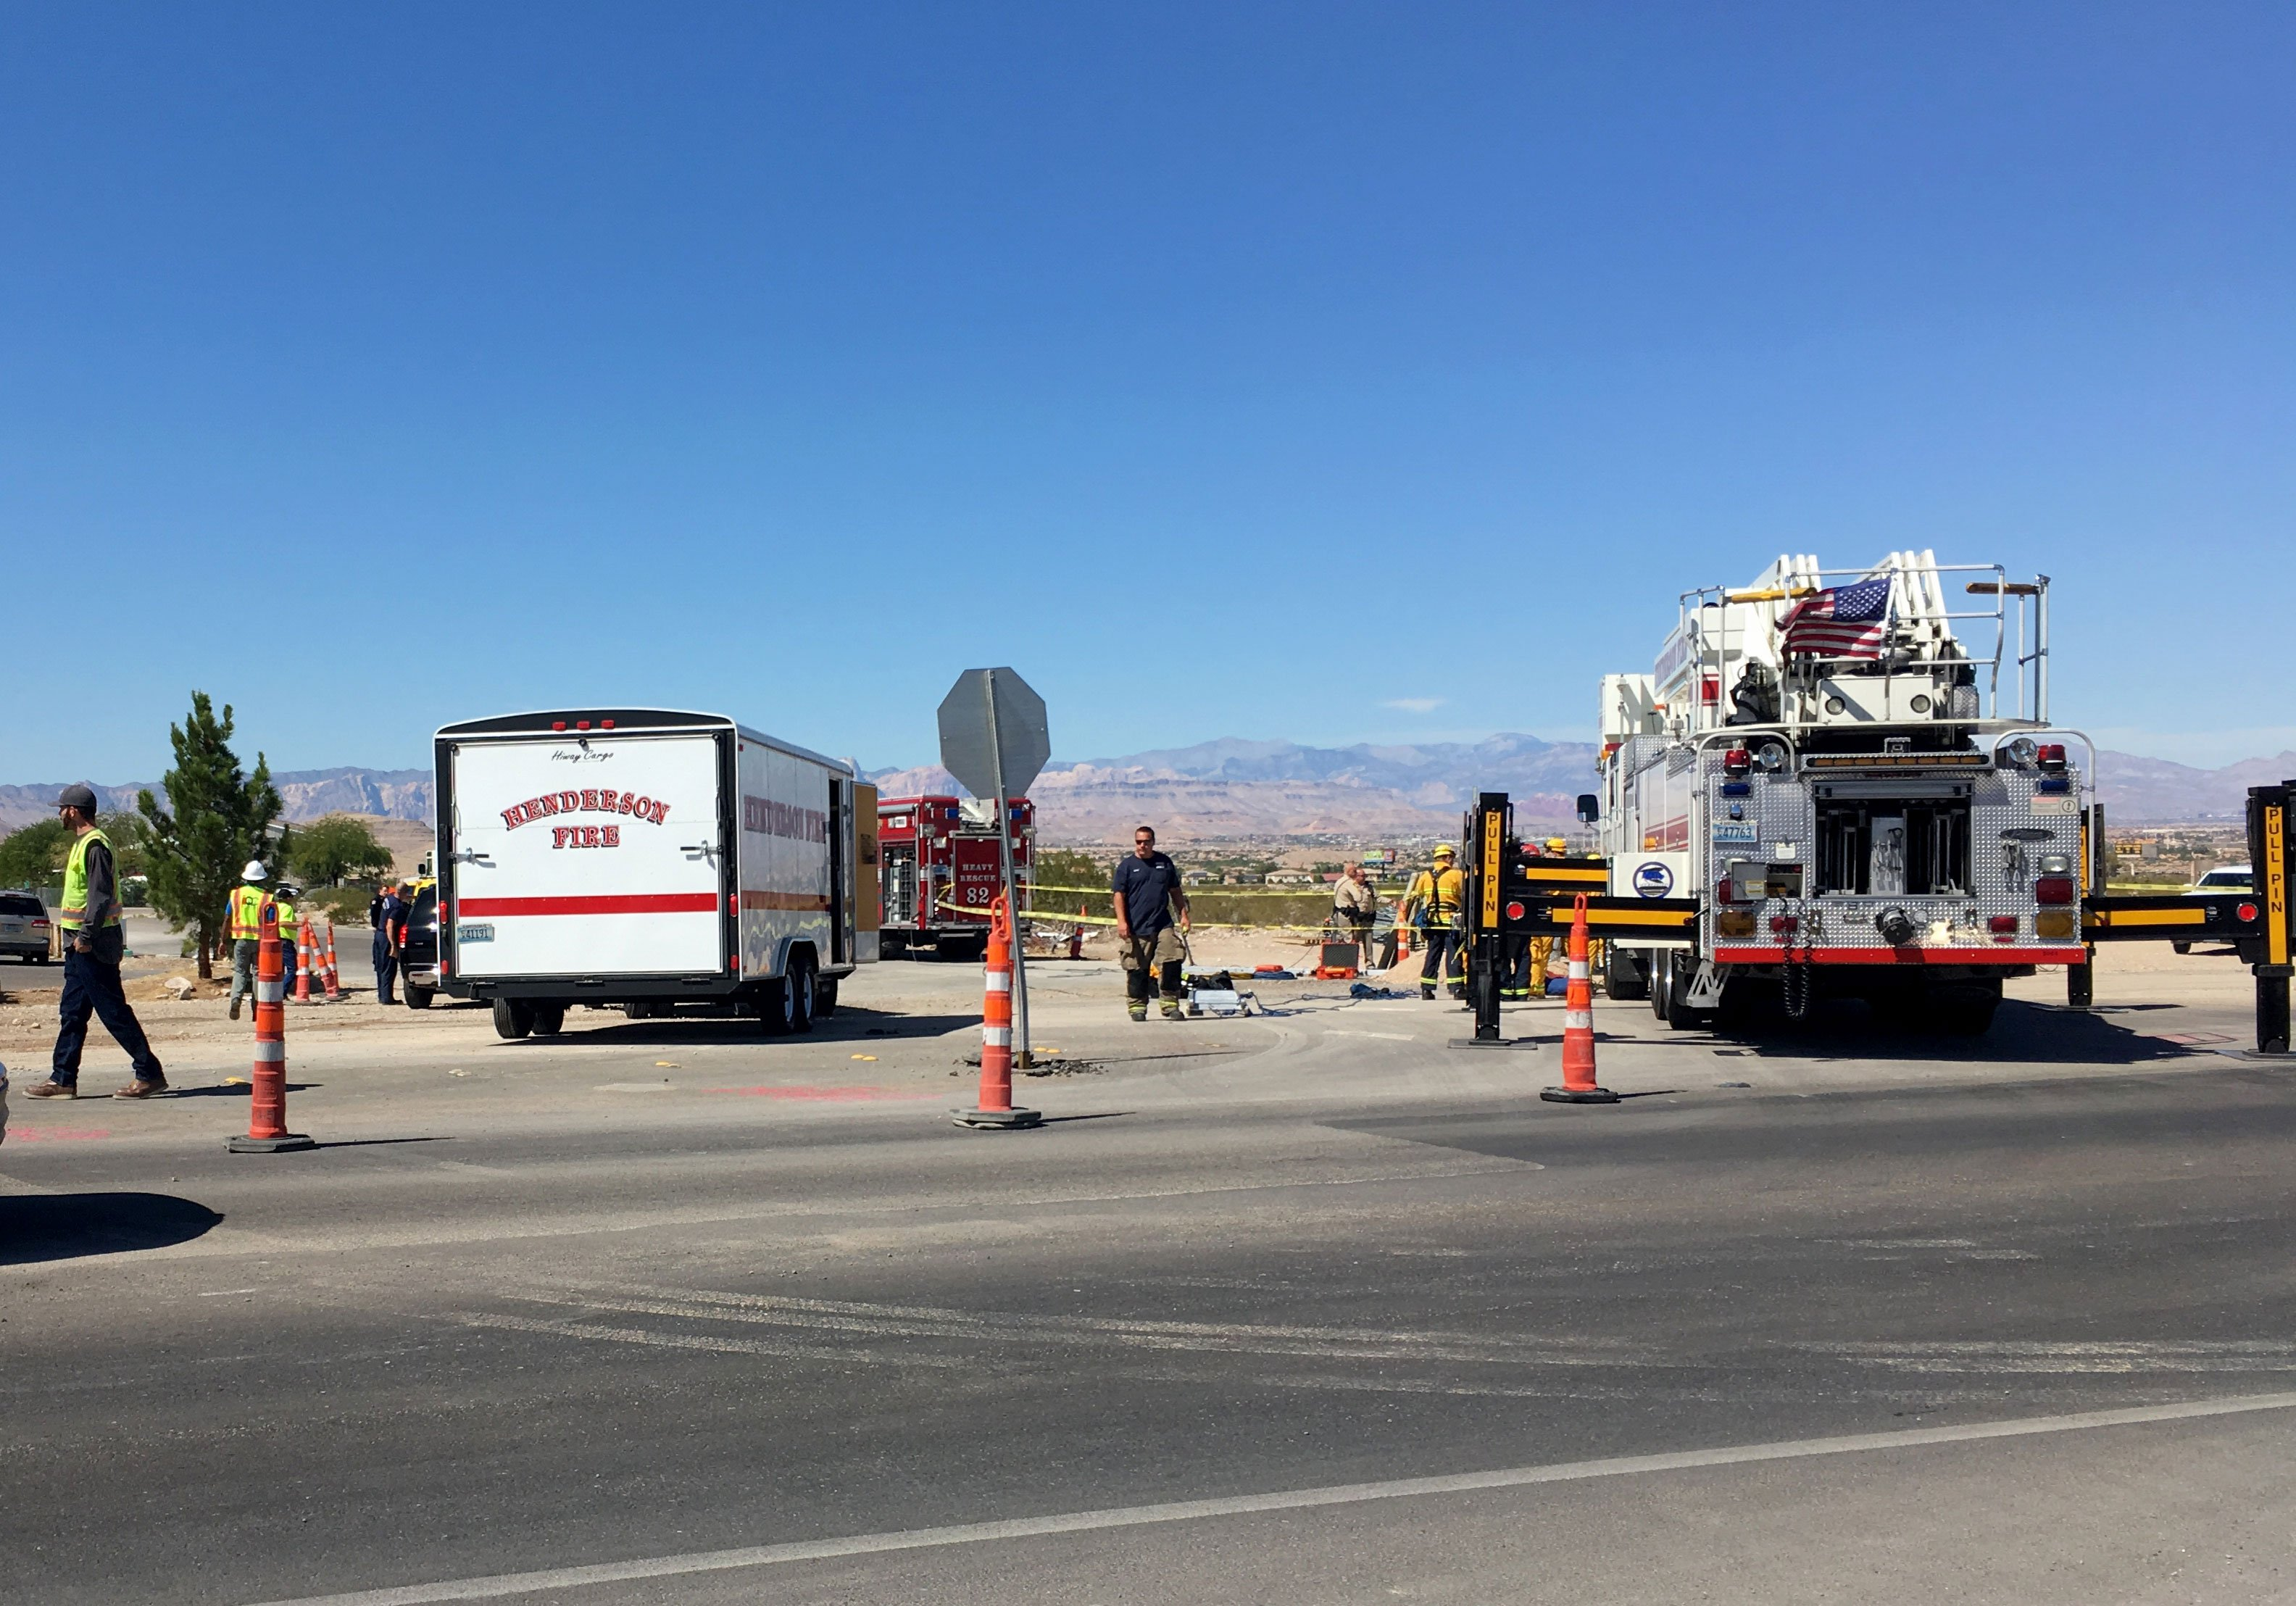 Authorities respond to the scene of a construction accident on Sept. 25, 2017. (Kurt Rempe/FOX5)